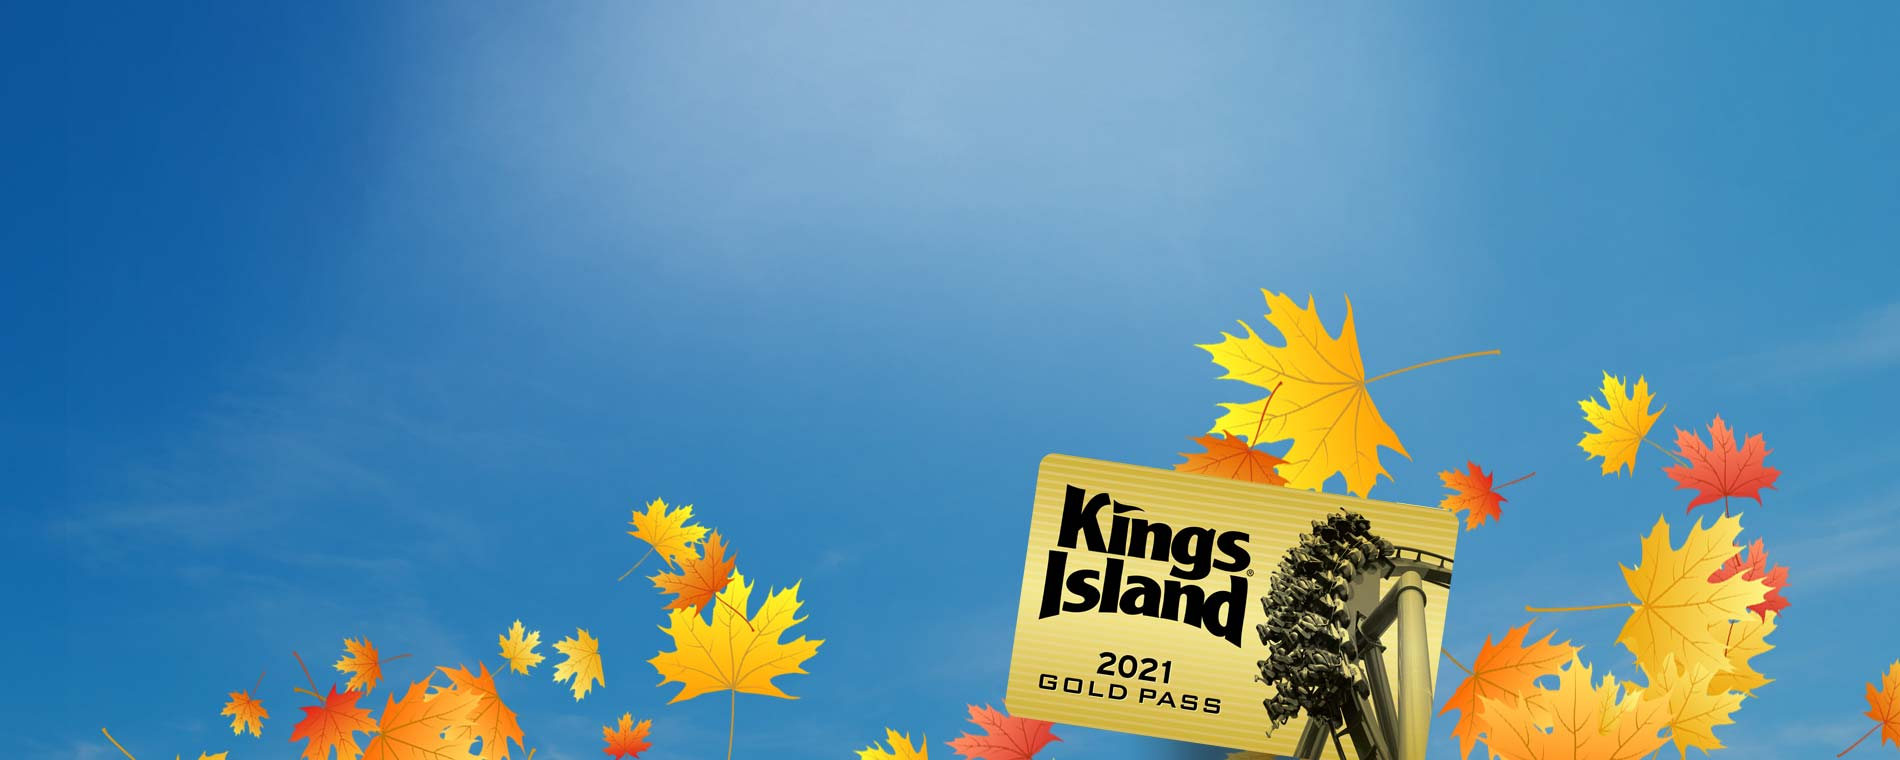 Kings Island Gold Passes